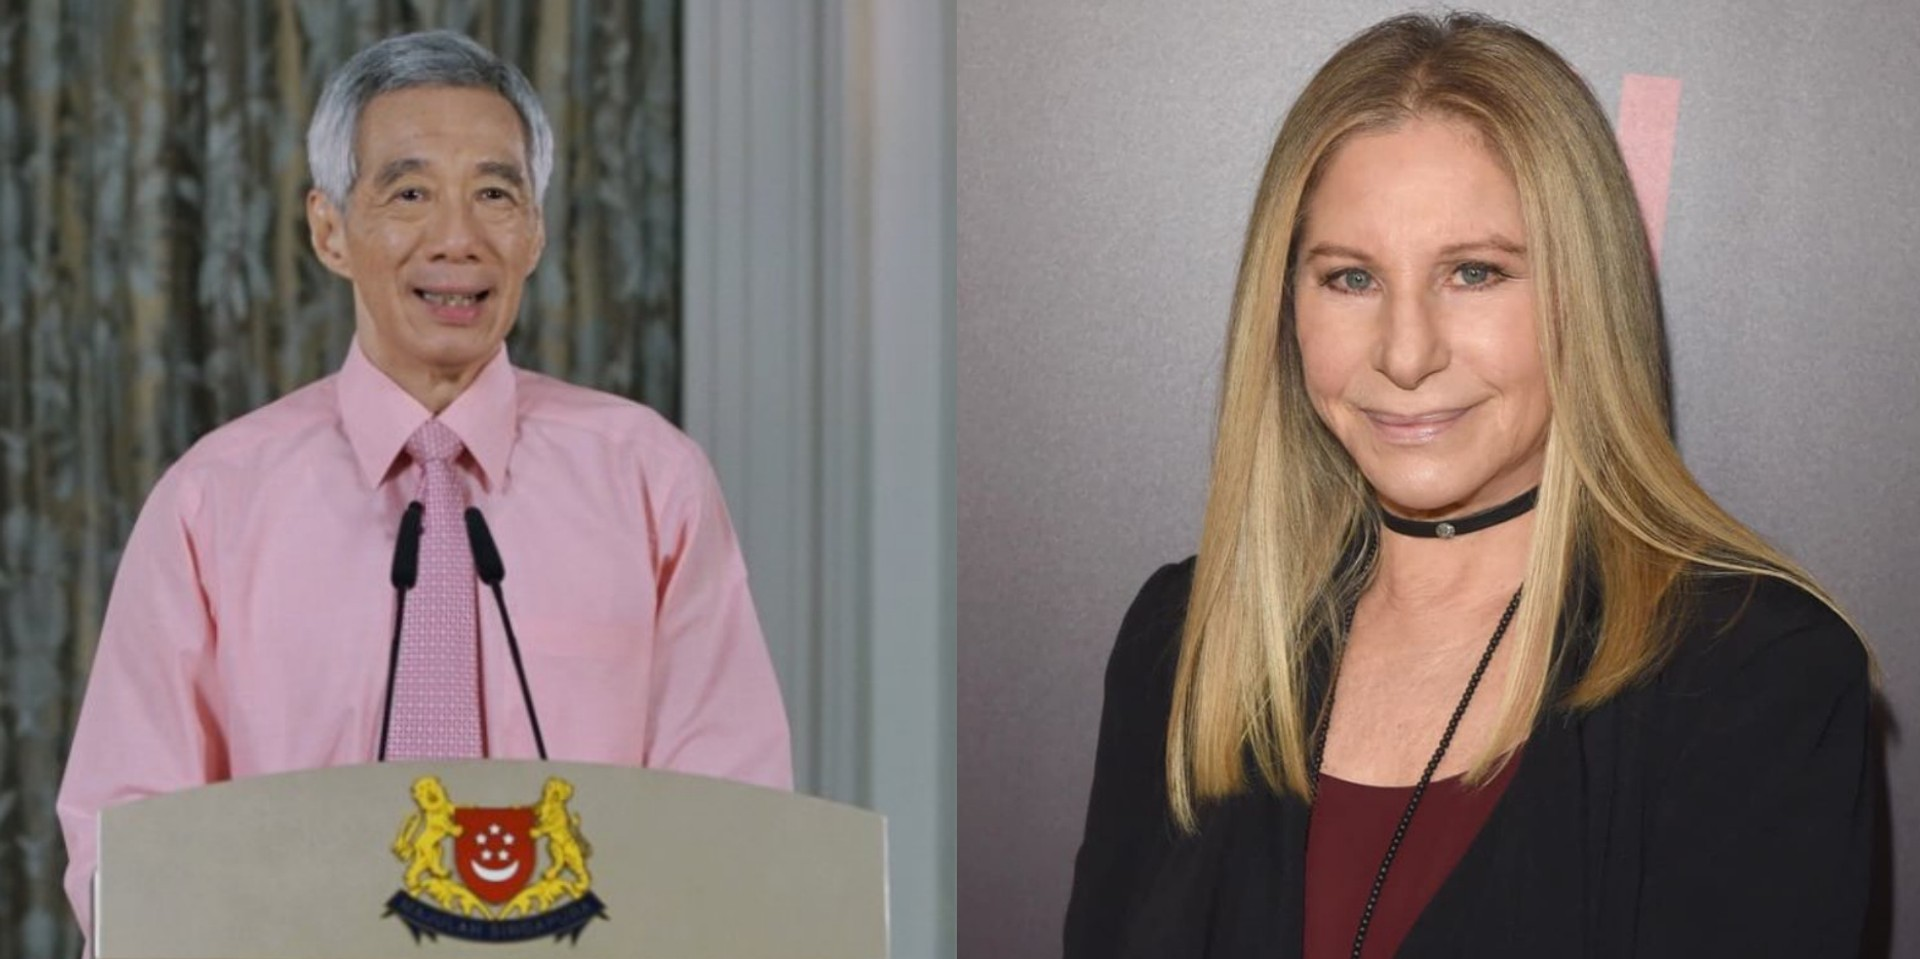 Barbra Streisand praises Singapore PM Lee Hsien Loong over response to COVID-19